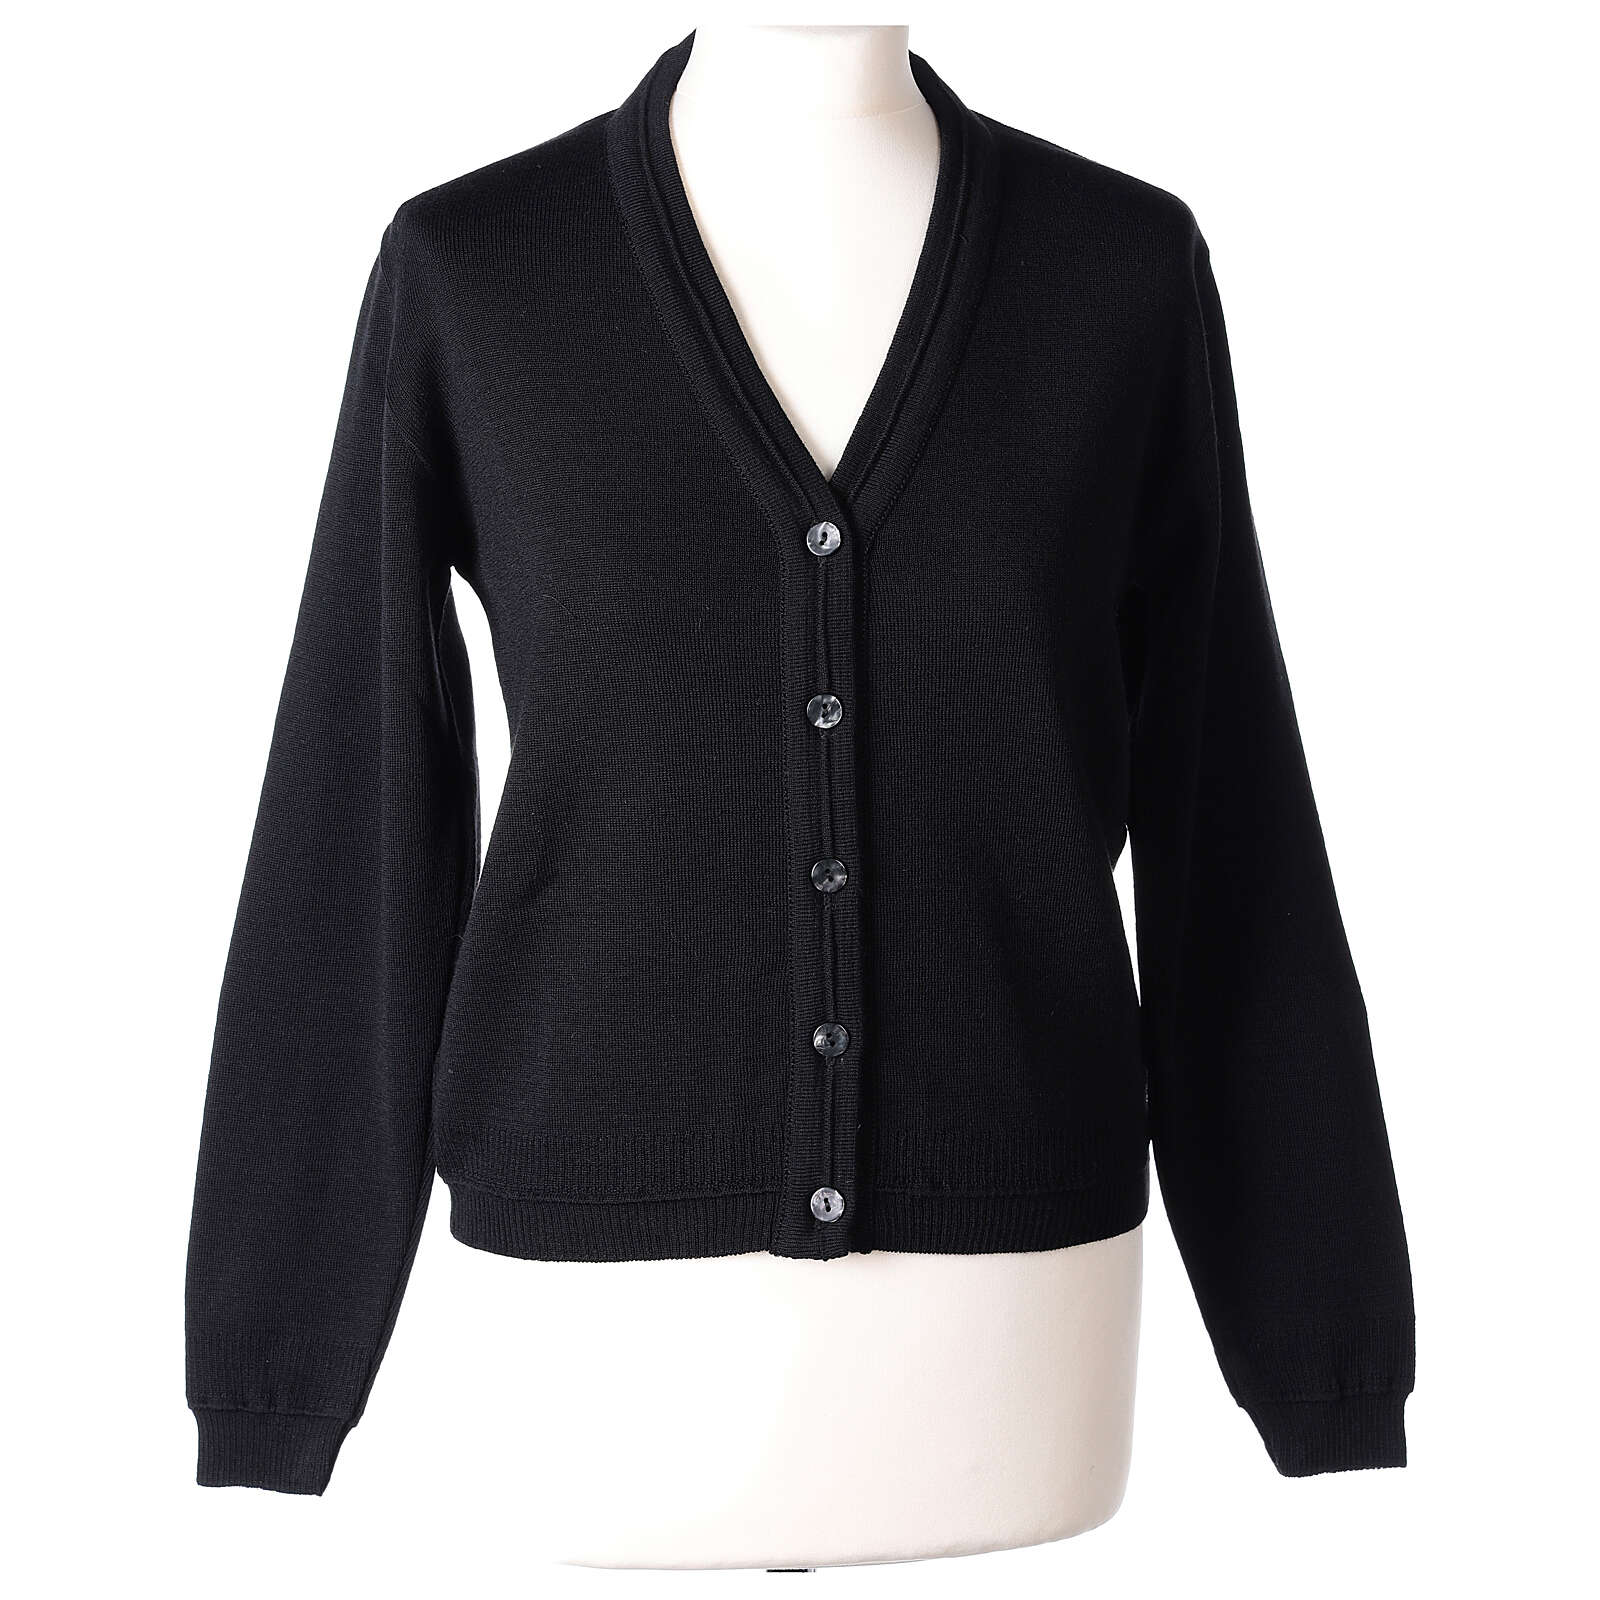 Short black cardigan 50% merino wool 50% acrylic for nun In Primis 4